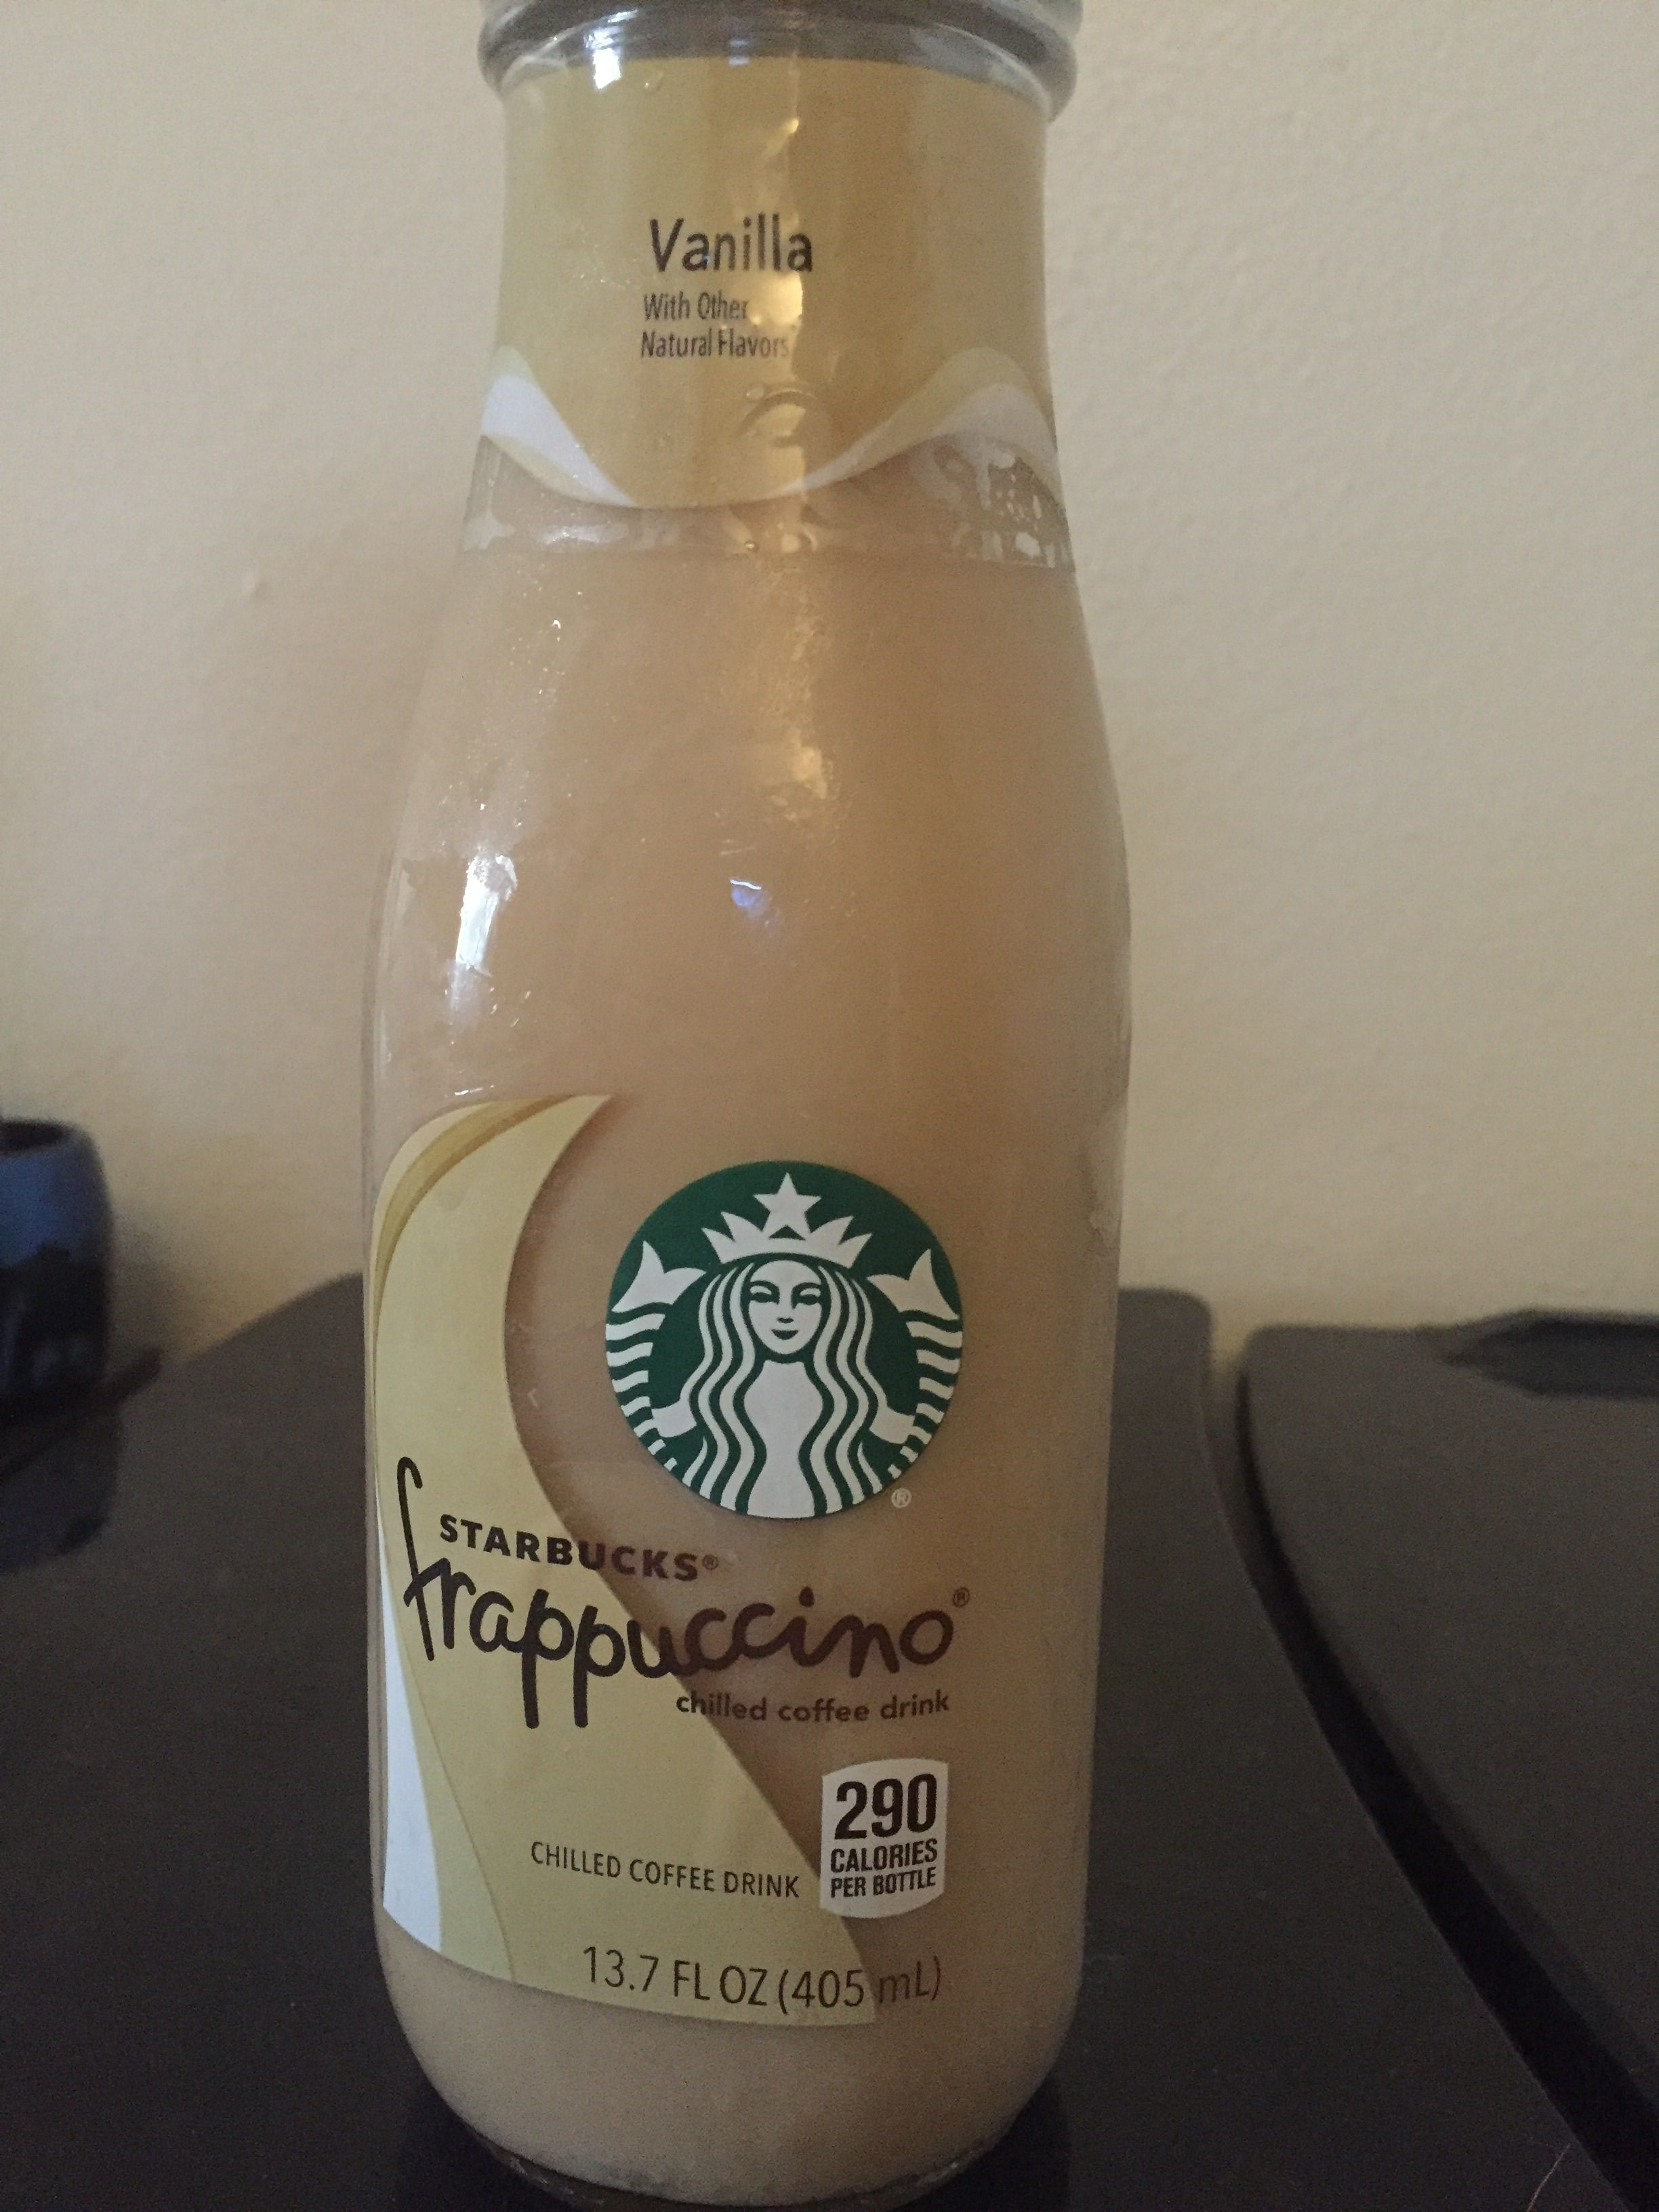 Pin by Cayden on Food ♡ Starbucks frappuccino bottle